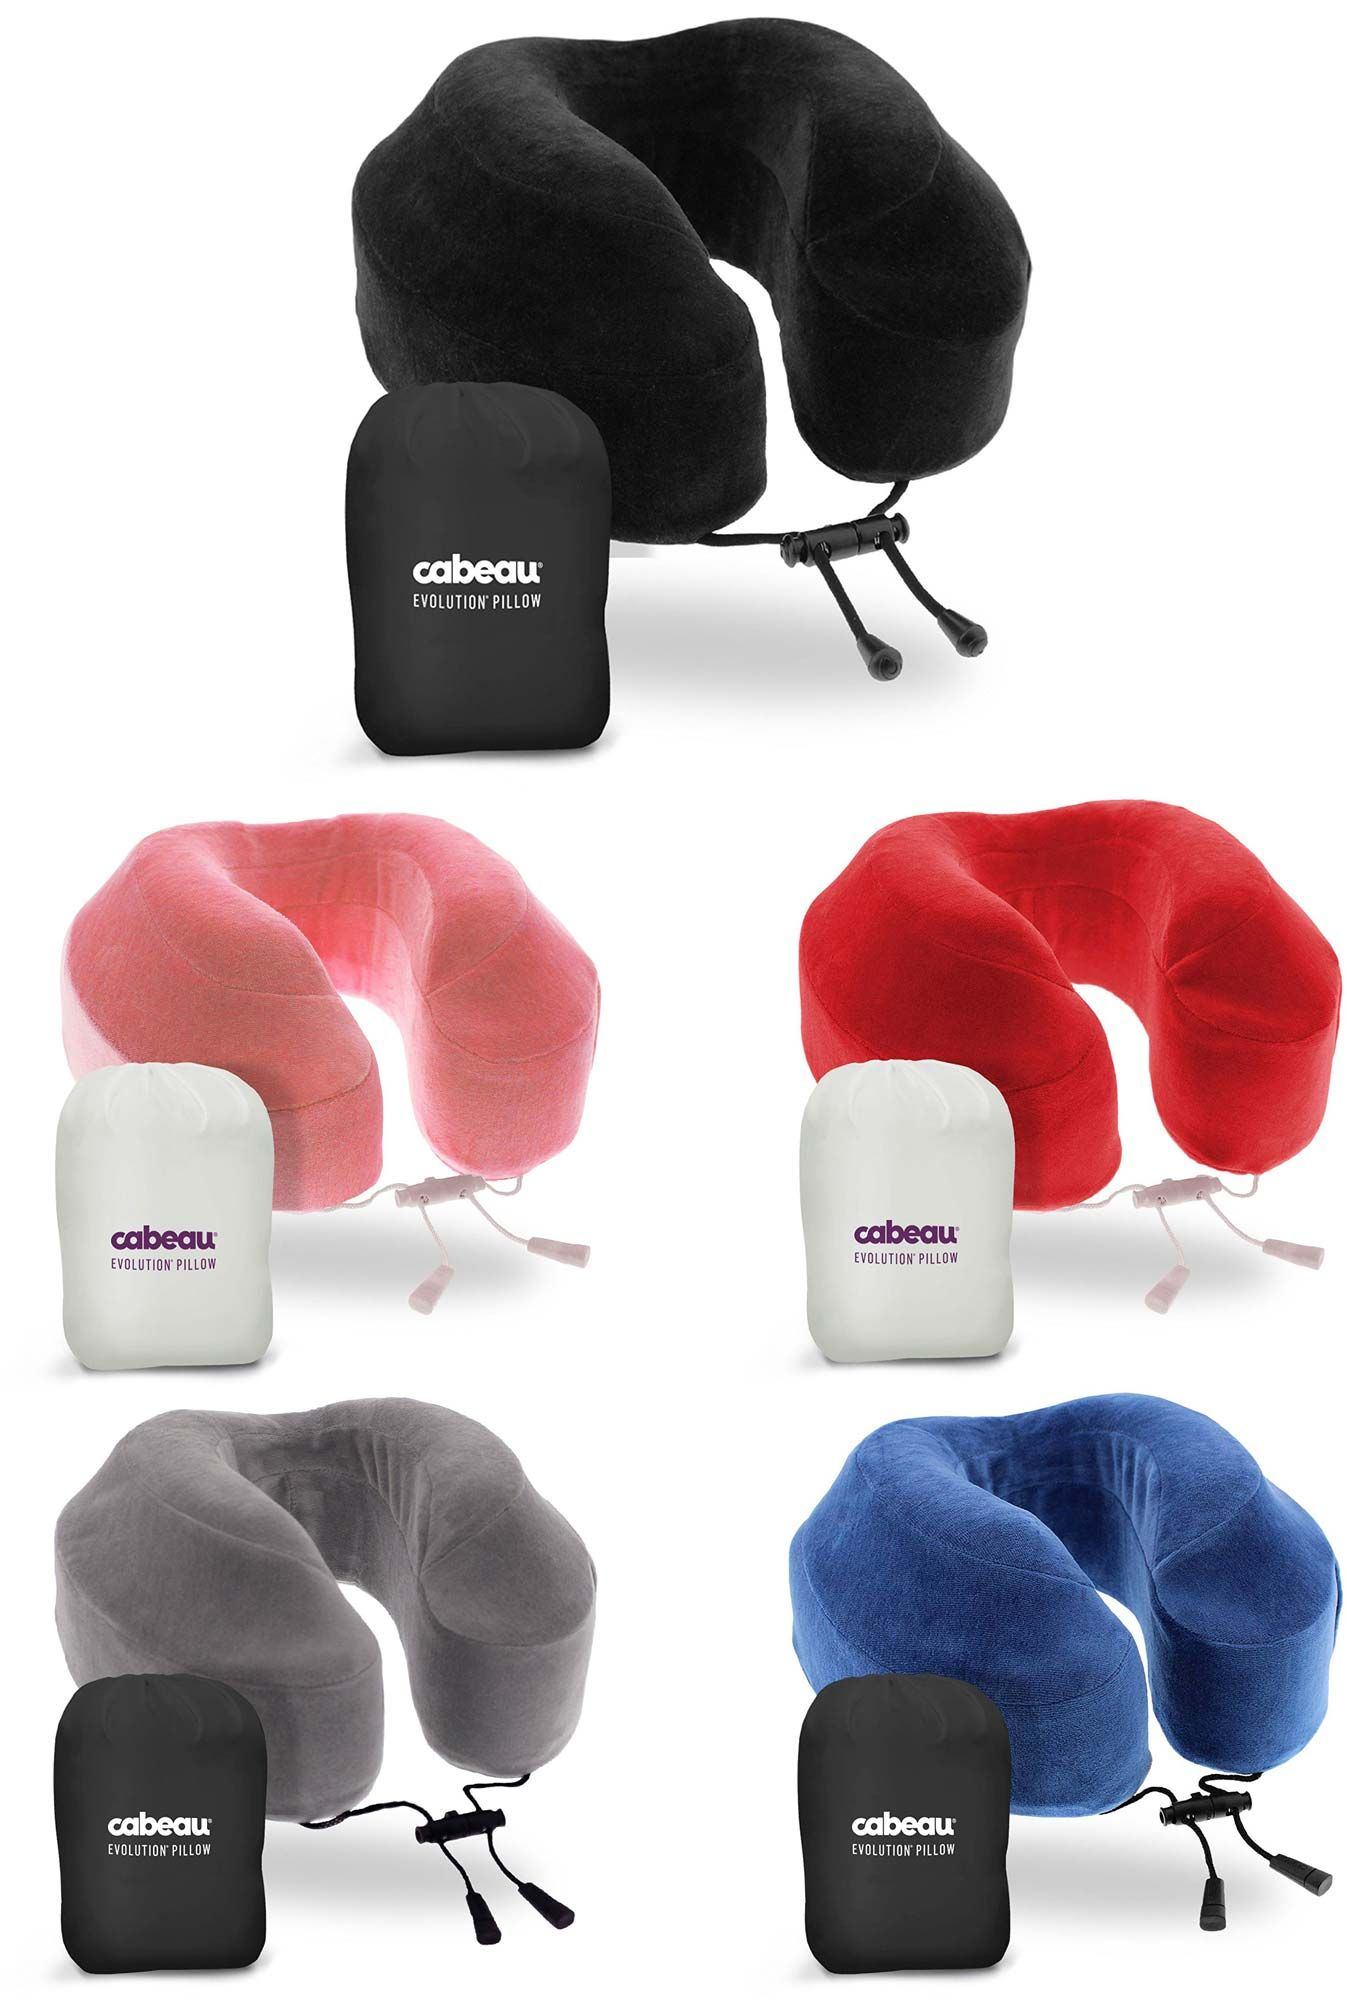 Cabeau Evolution Pillow.Cabeau Evolution S3 Memory Foam Travel Pillow With Seat Strap System